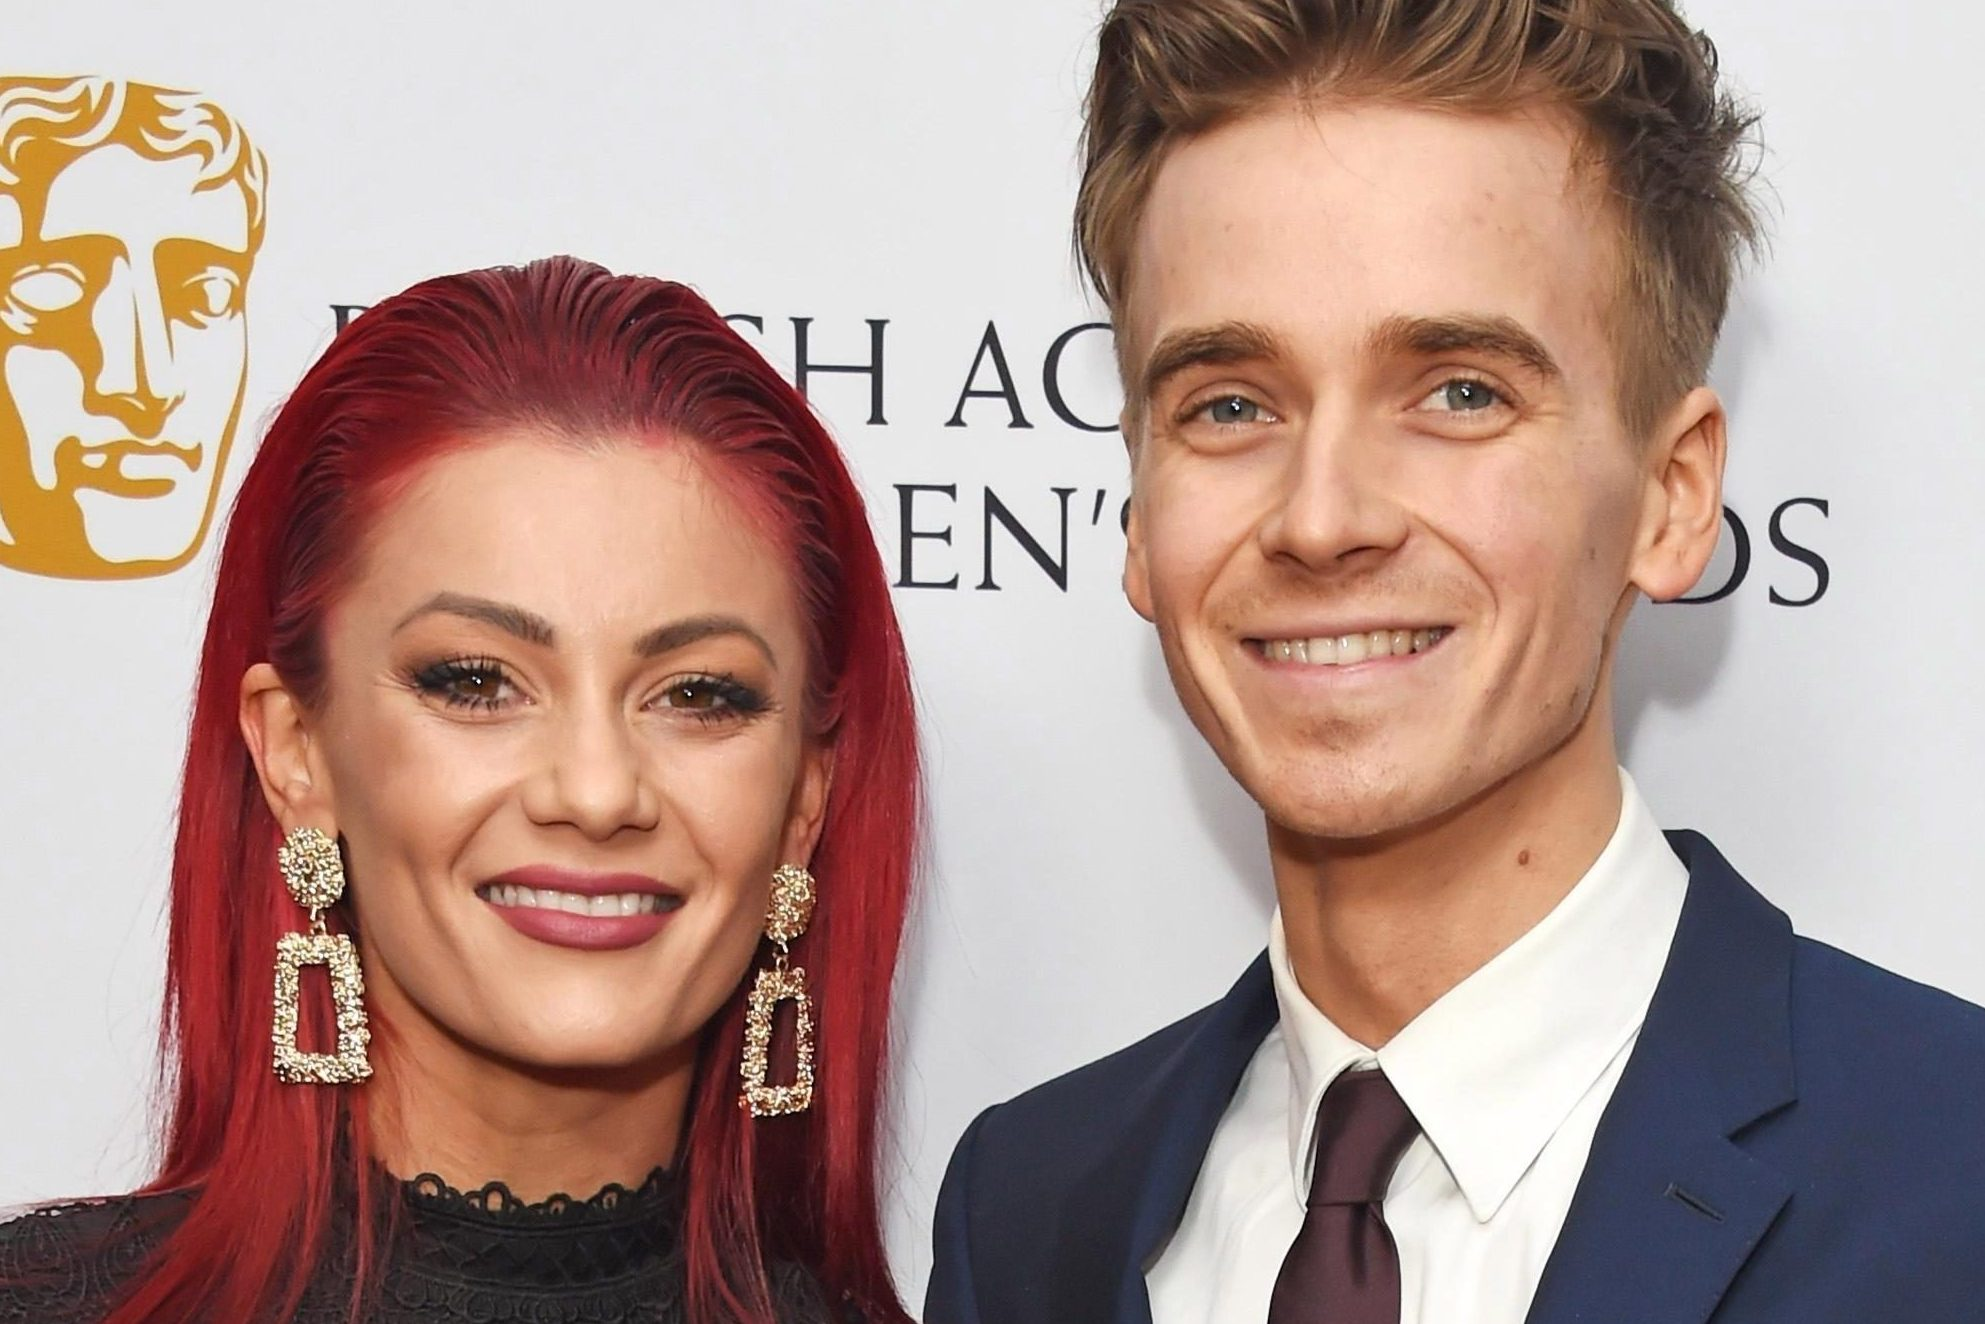 Are Joe Sugg and Dianne Buswell in a relationship?